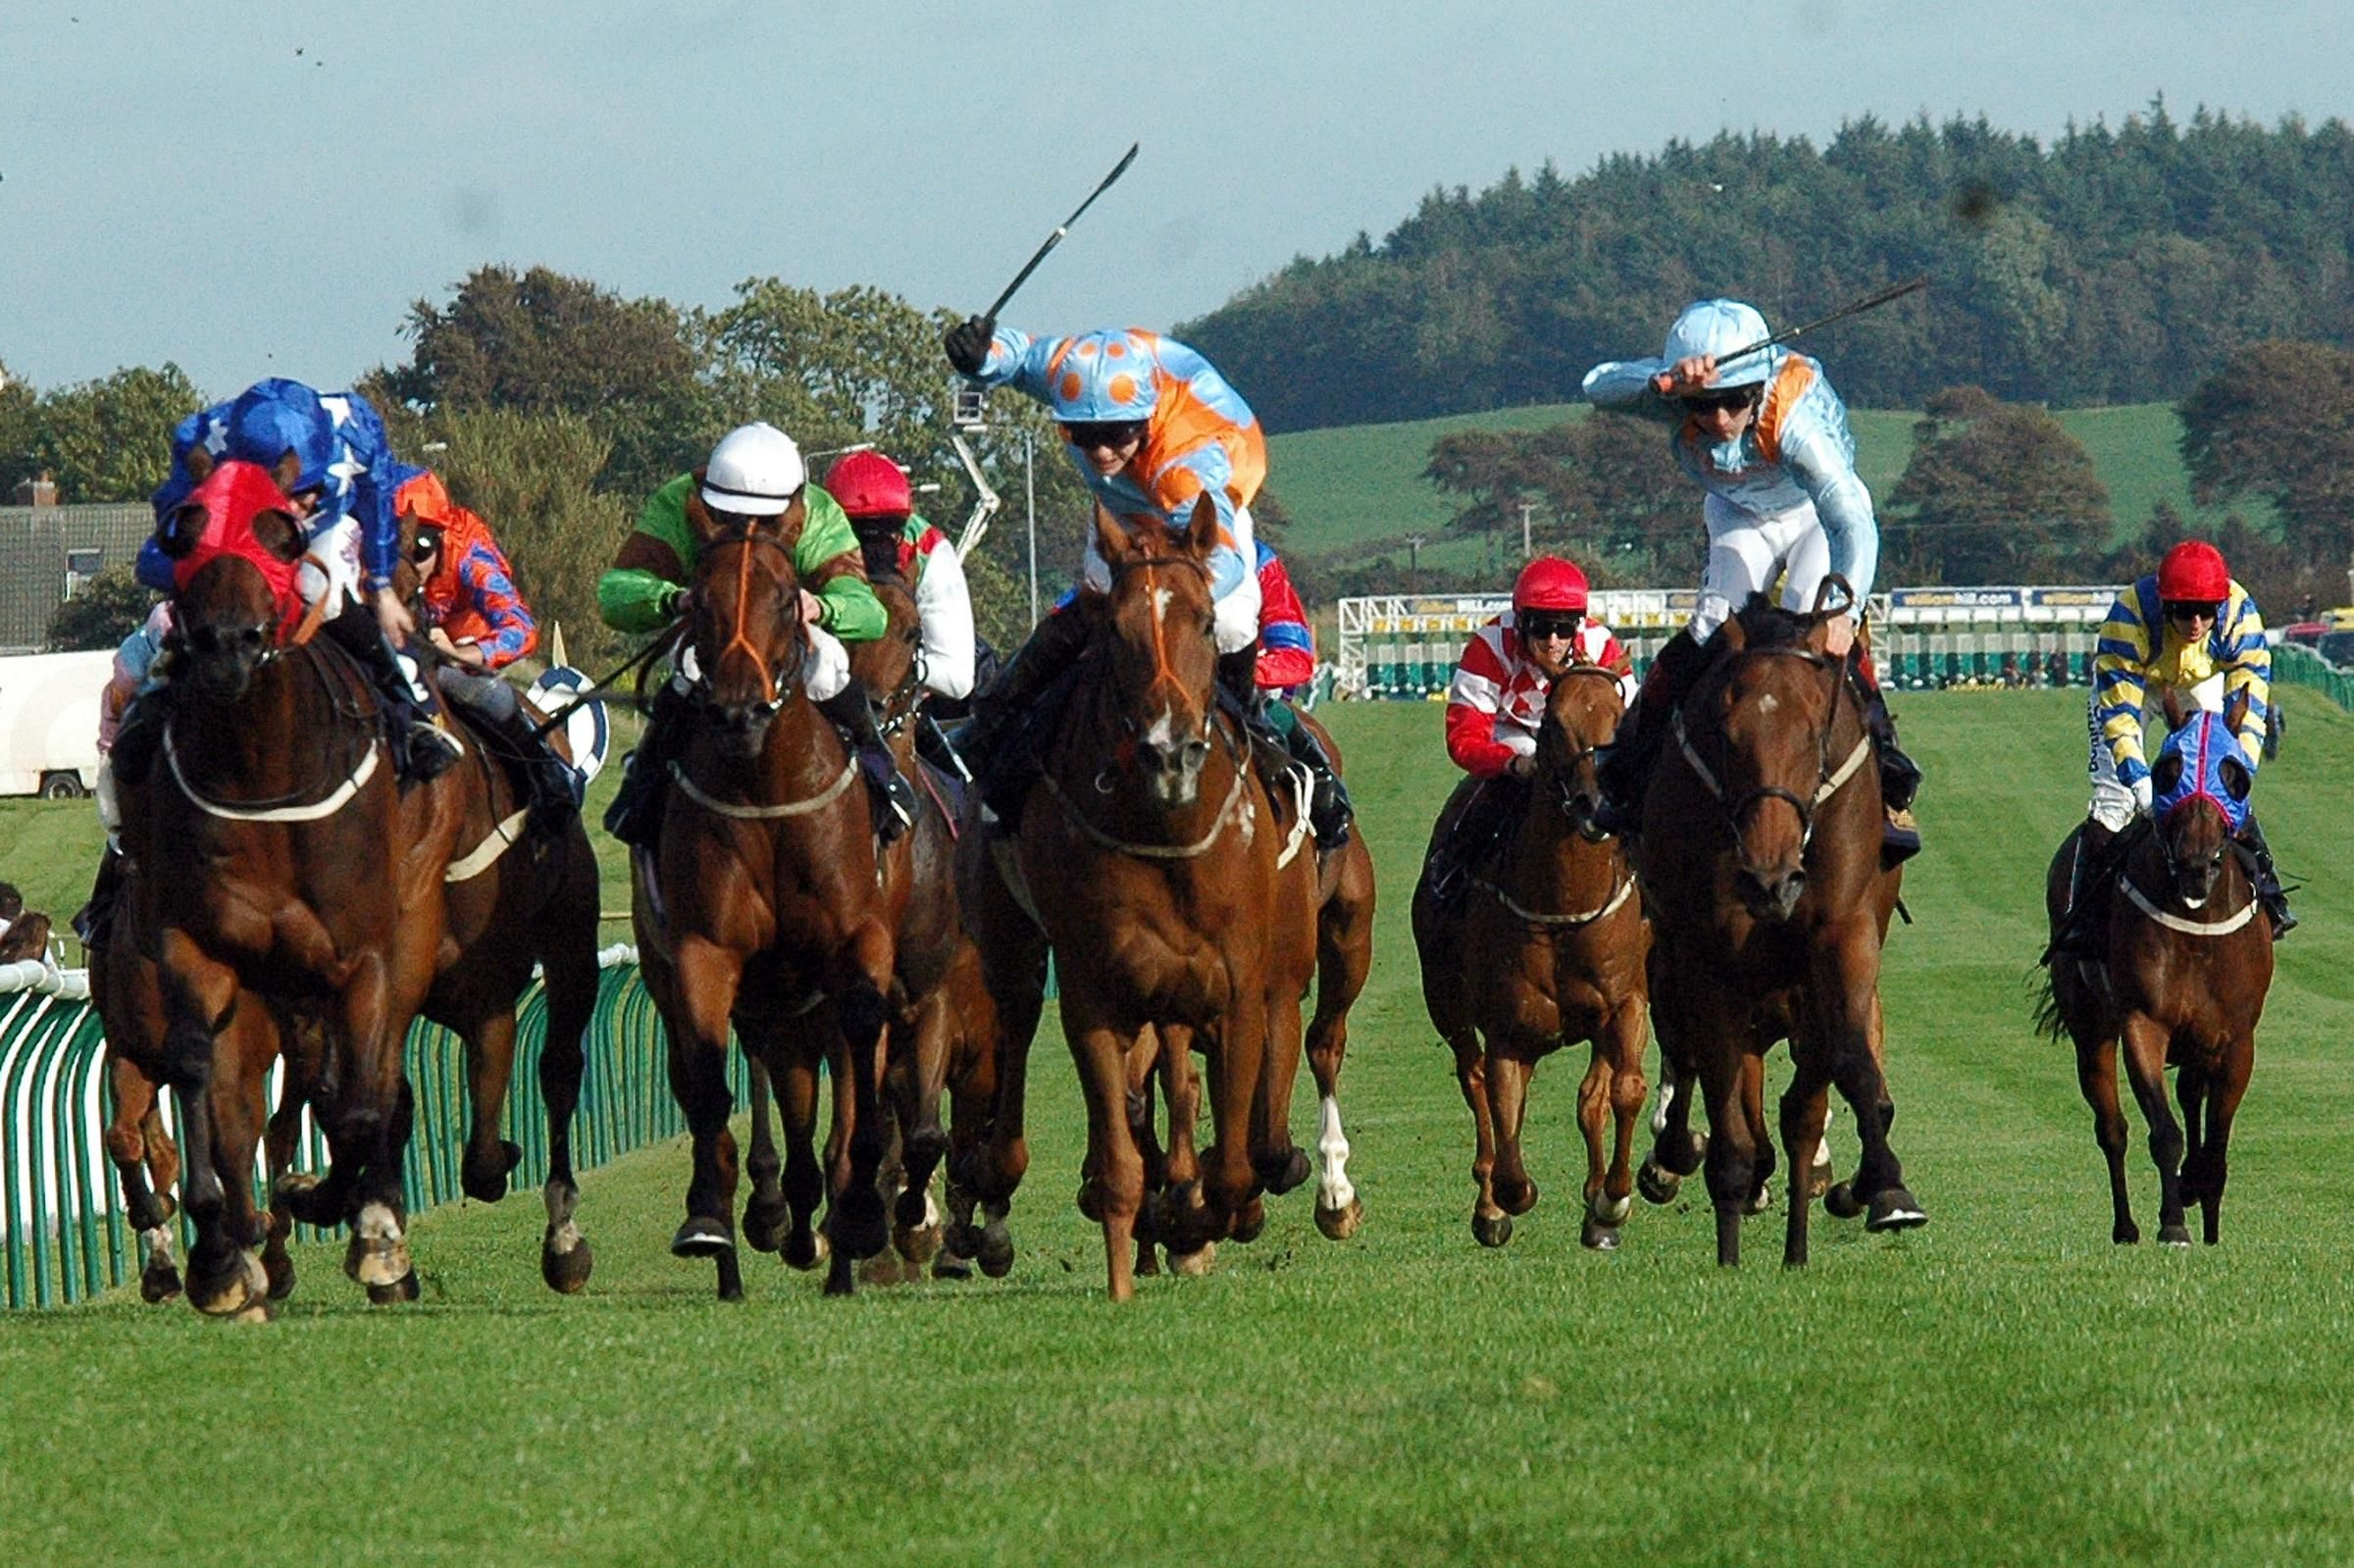 Animal racing betting games on the golf states with sports betting oregon